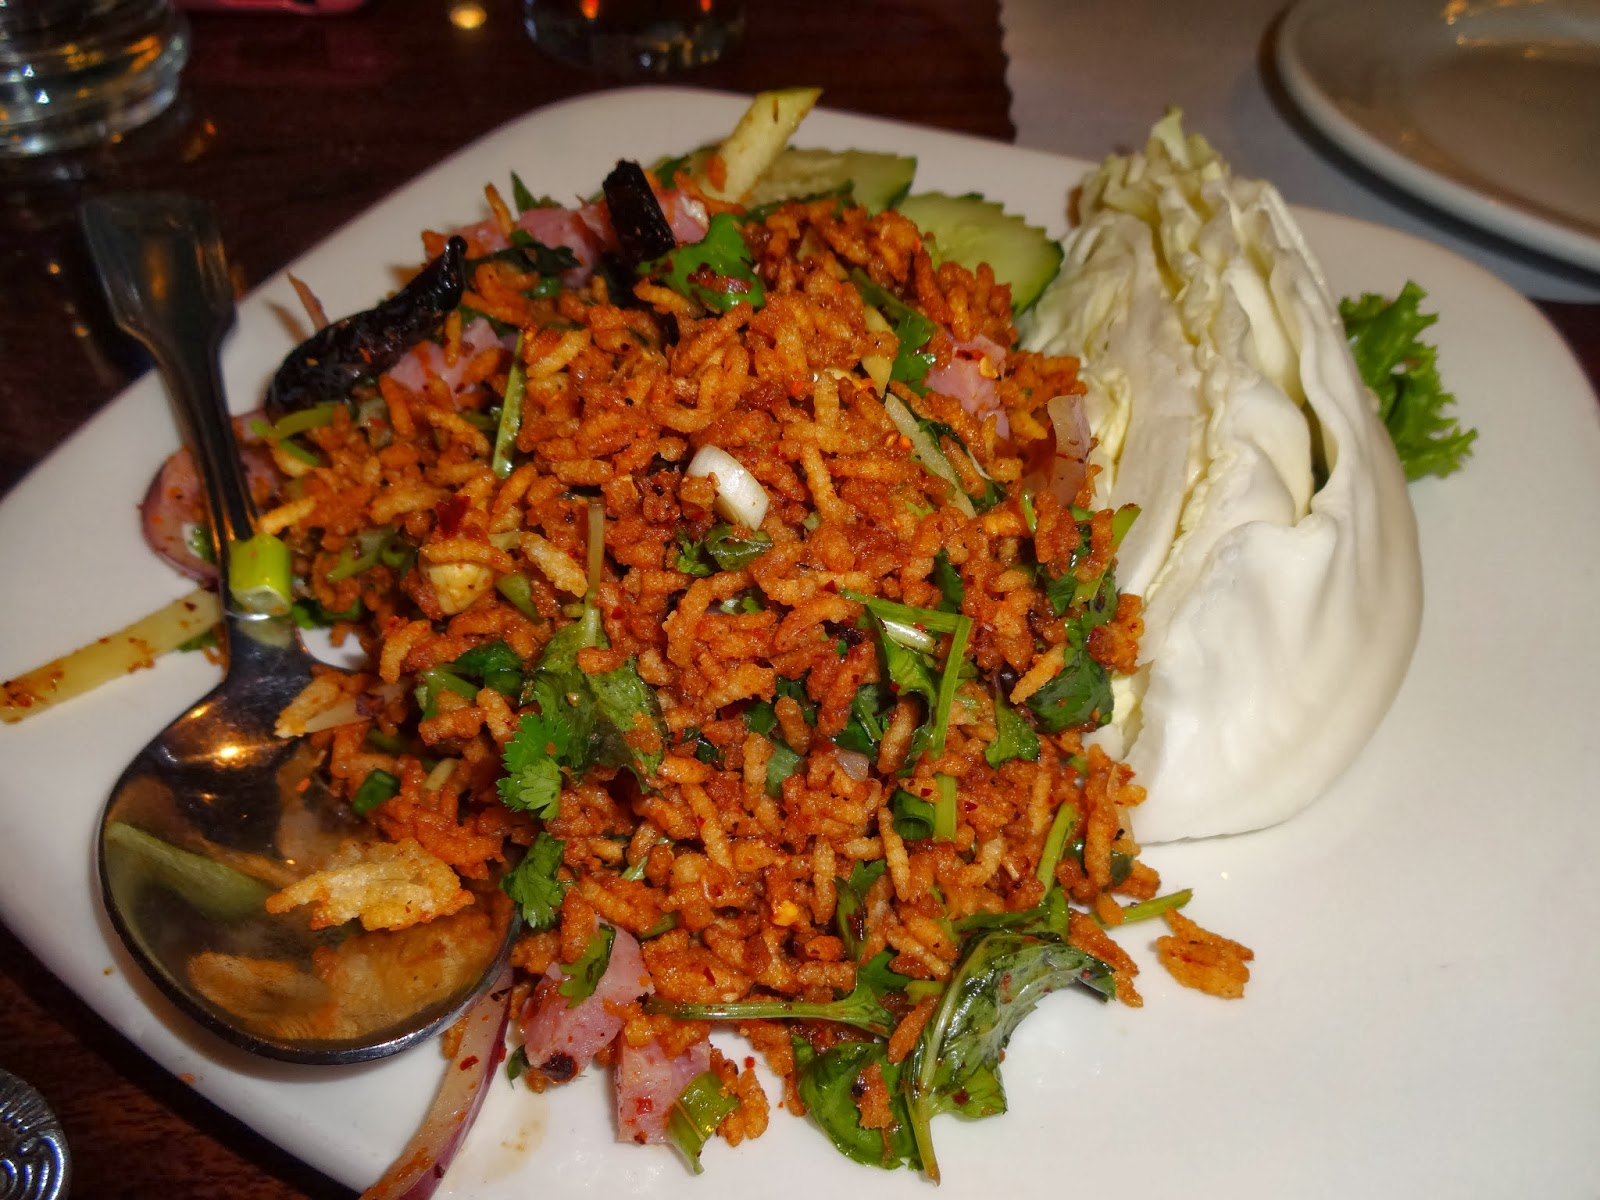 Eating My Way Through OC: Tempting Thai Food Off of the Strip